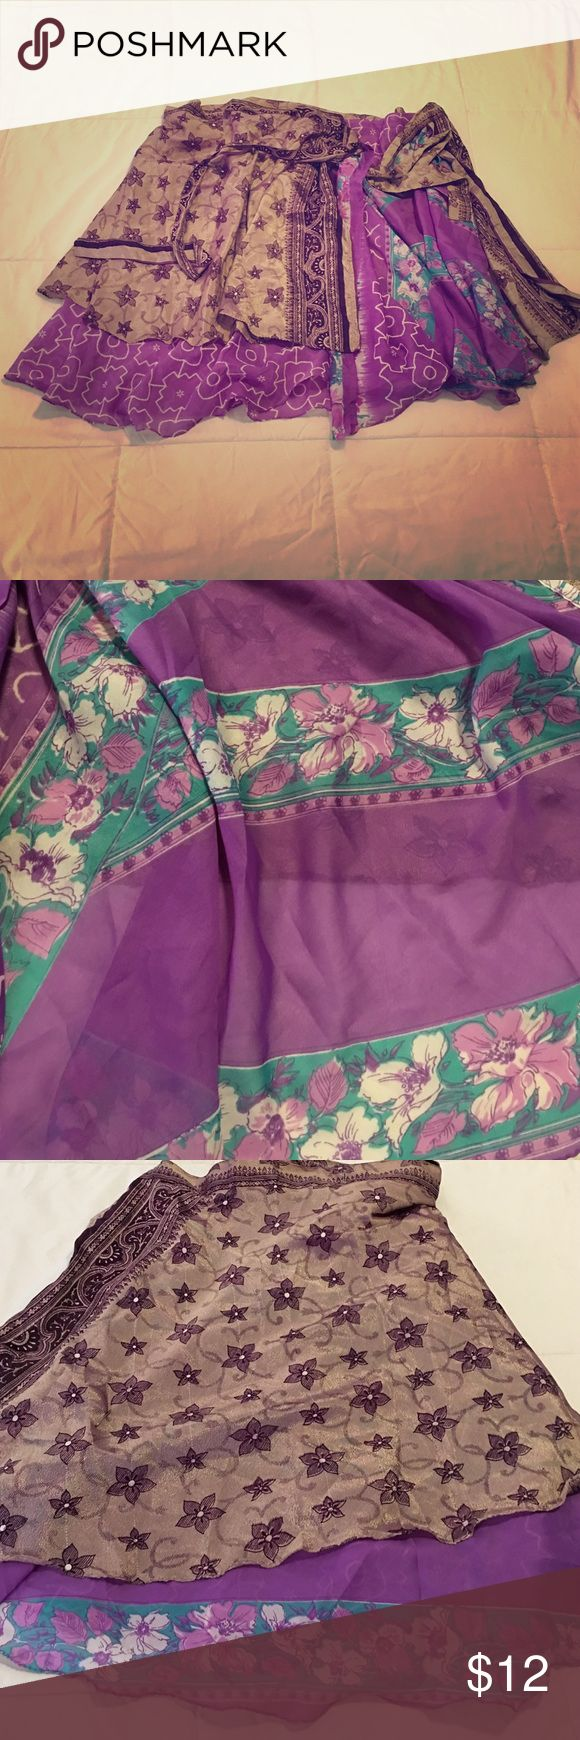 Kariza Skirt/Wrap Beautiful purple floral and geometric print Kariza wrap. Add this multifunctional concept piece to your wardrobe-you won't be disappointed! ❤️perfect condition. Will fit most sizes. Kariza Dresses